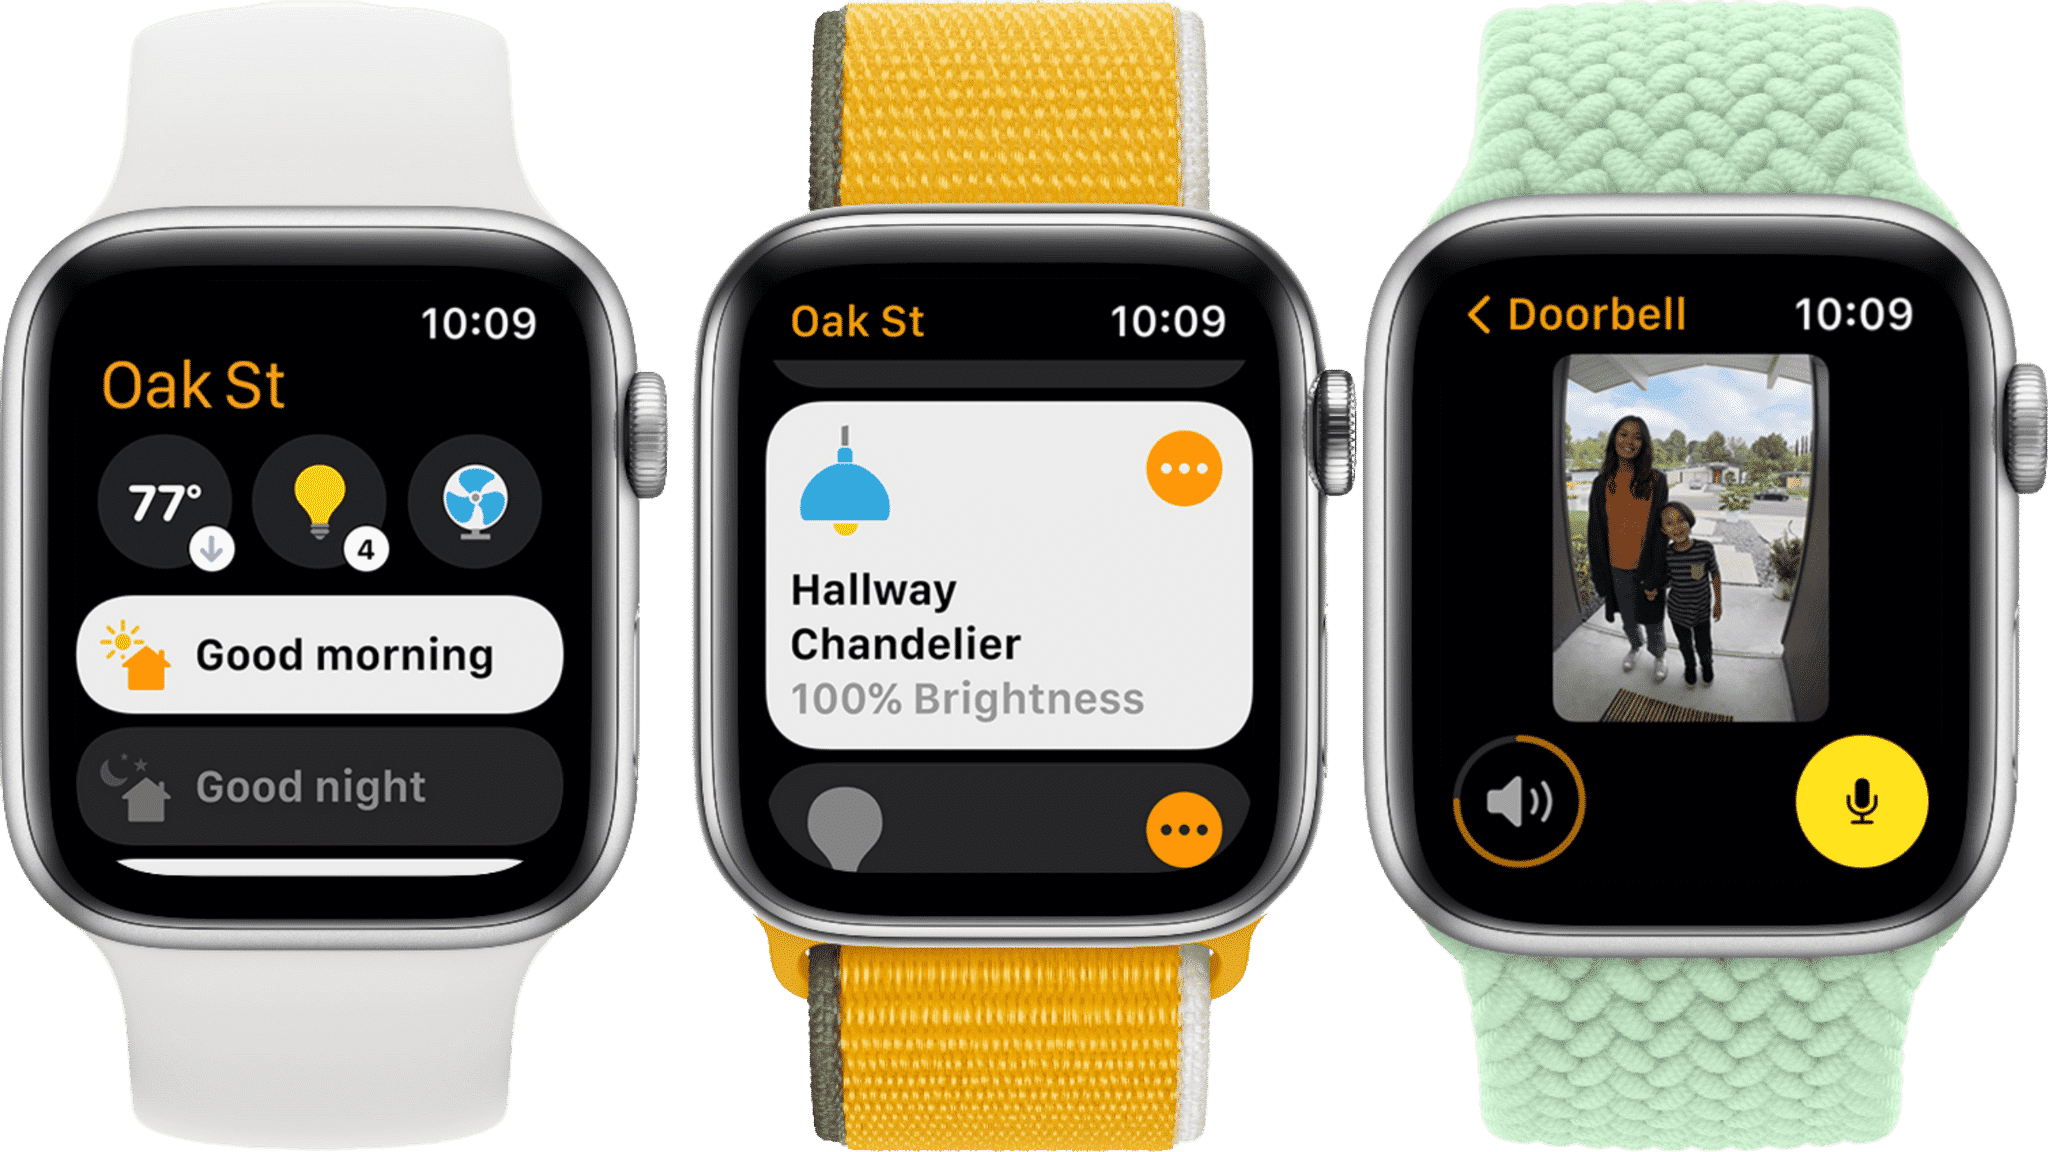 WatchOS 8 helps users stay healthy, active and connected